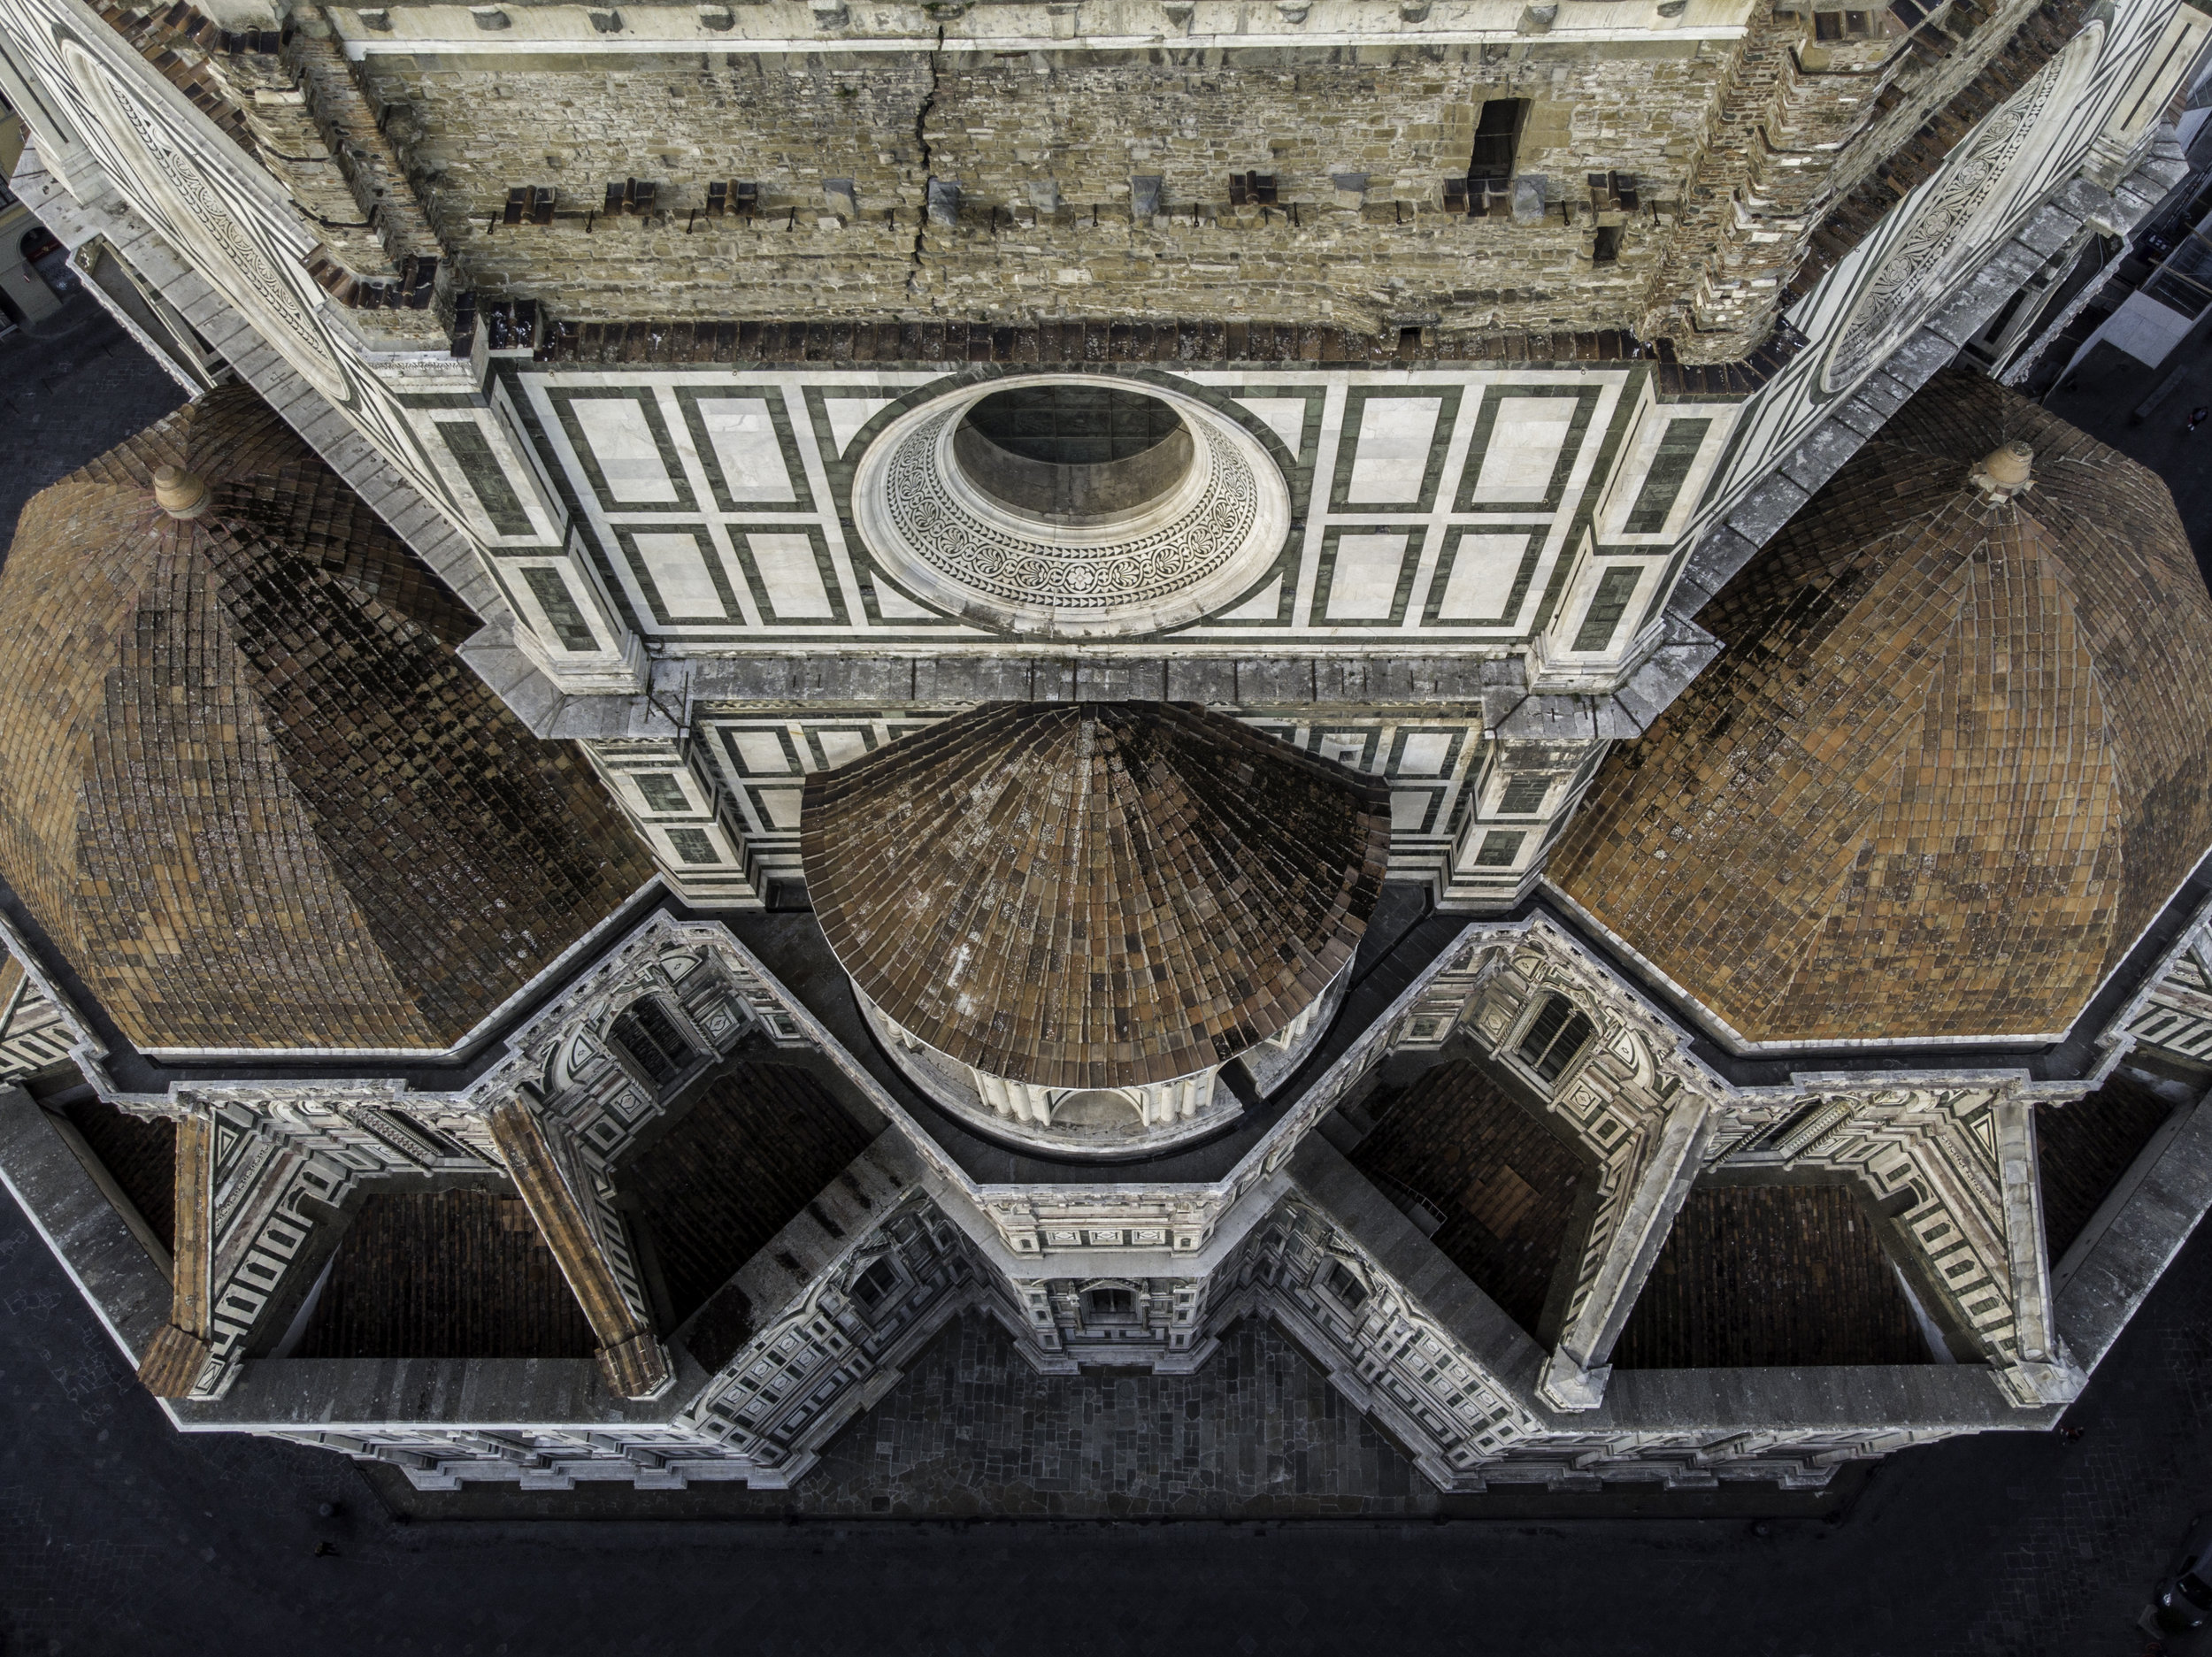 The exterior of the Duomo sources its marble from three locations: Carrara (white), Prato (green), and Siena (red), as well as others. It boasts a footprint of 8,300 m2 (89,0002 ft.) and is a UNESCO world heritage site. Photo credit: Freethedust